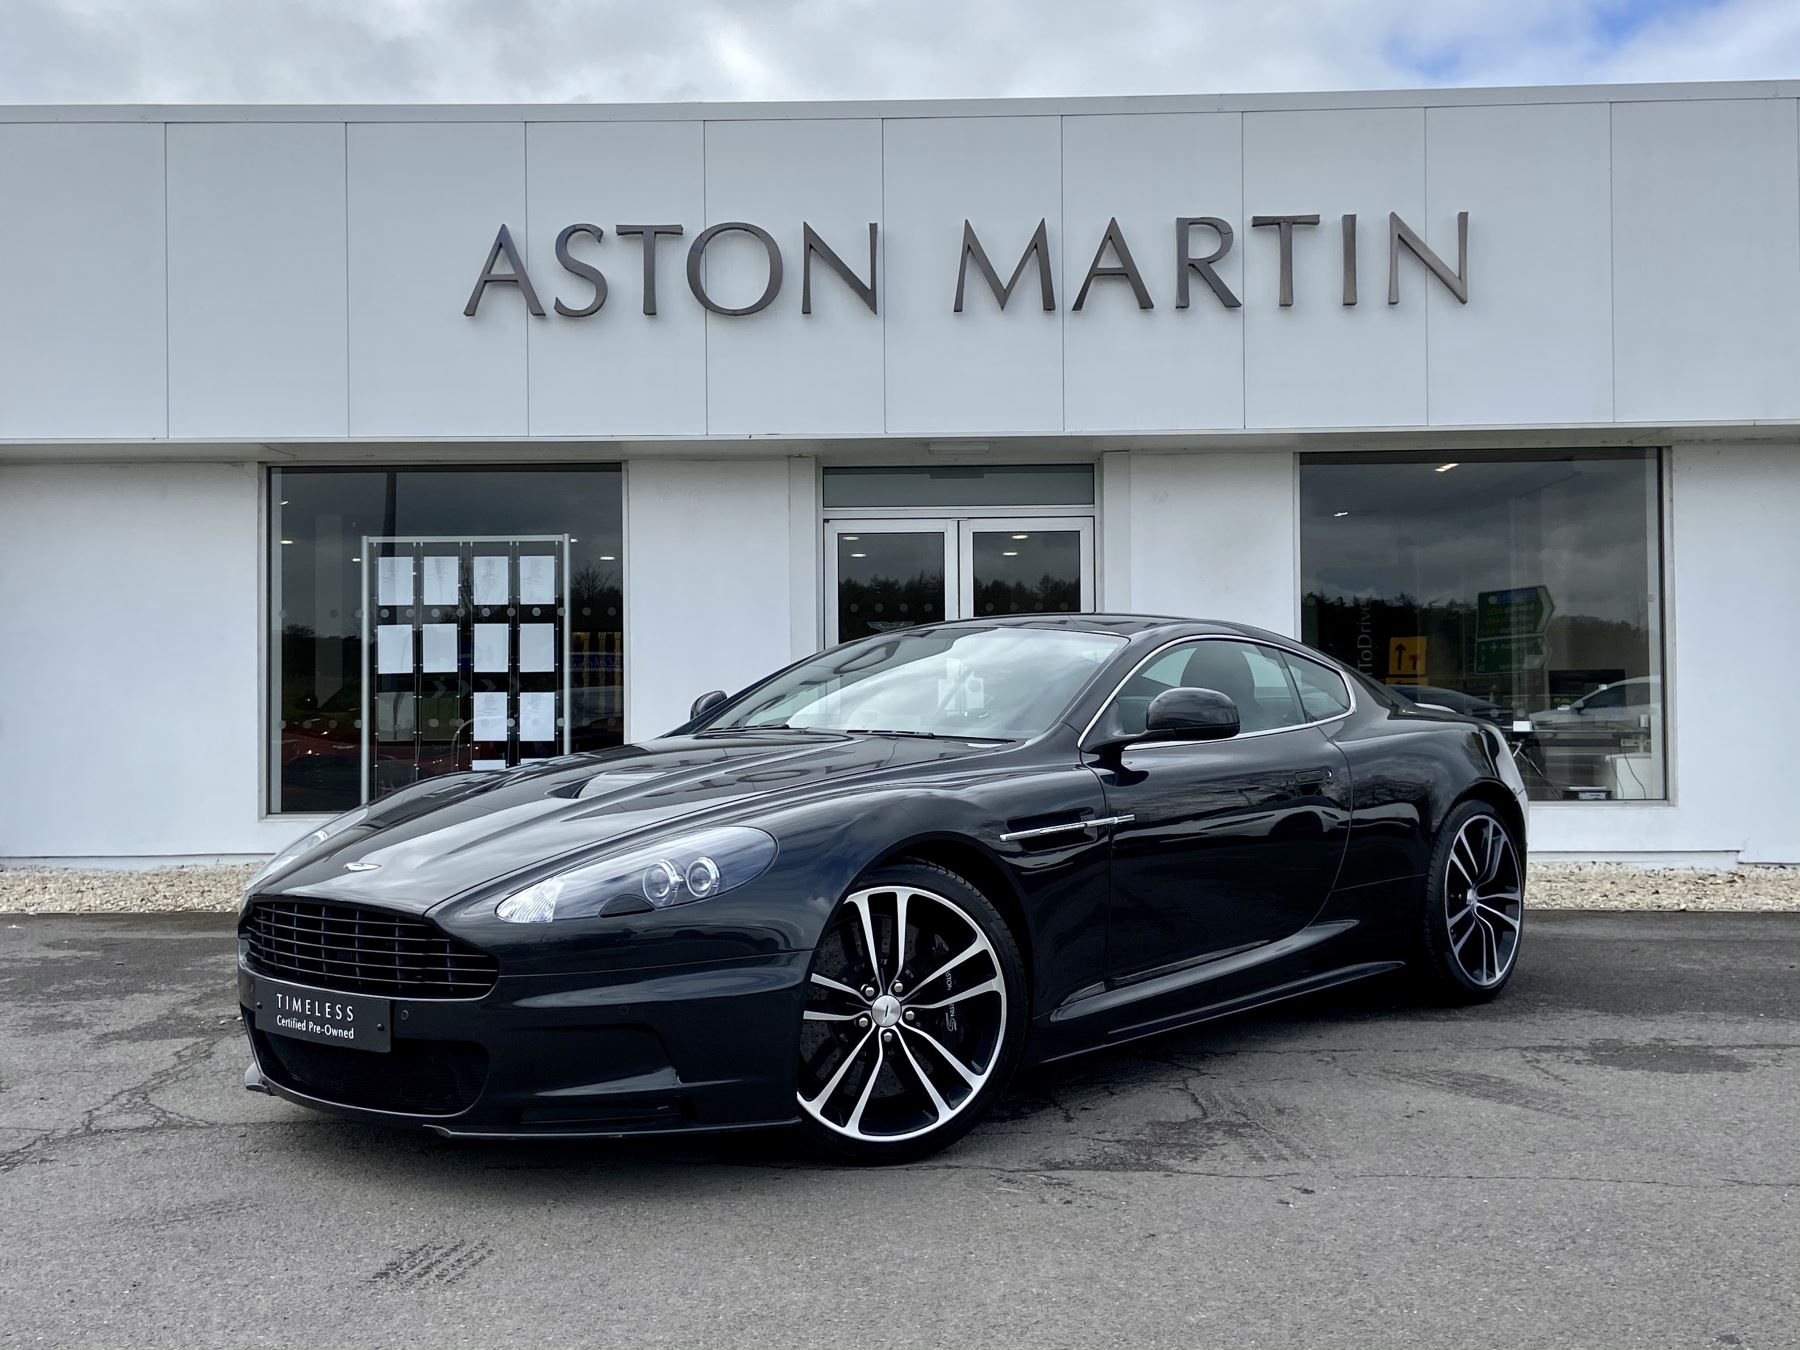 Aston Martin DBS Carbon Edition V12 2dr Touchtronic 5.9 Automatic Coupe (2012)